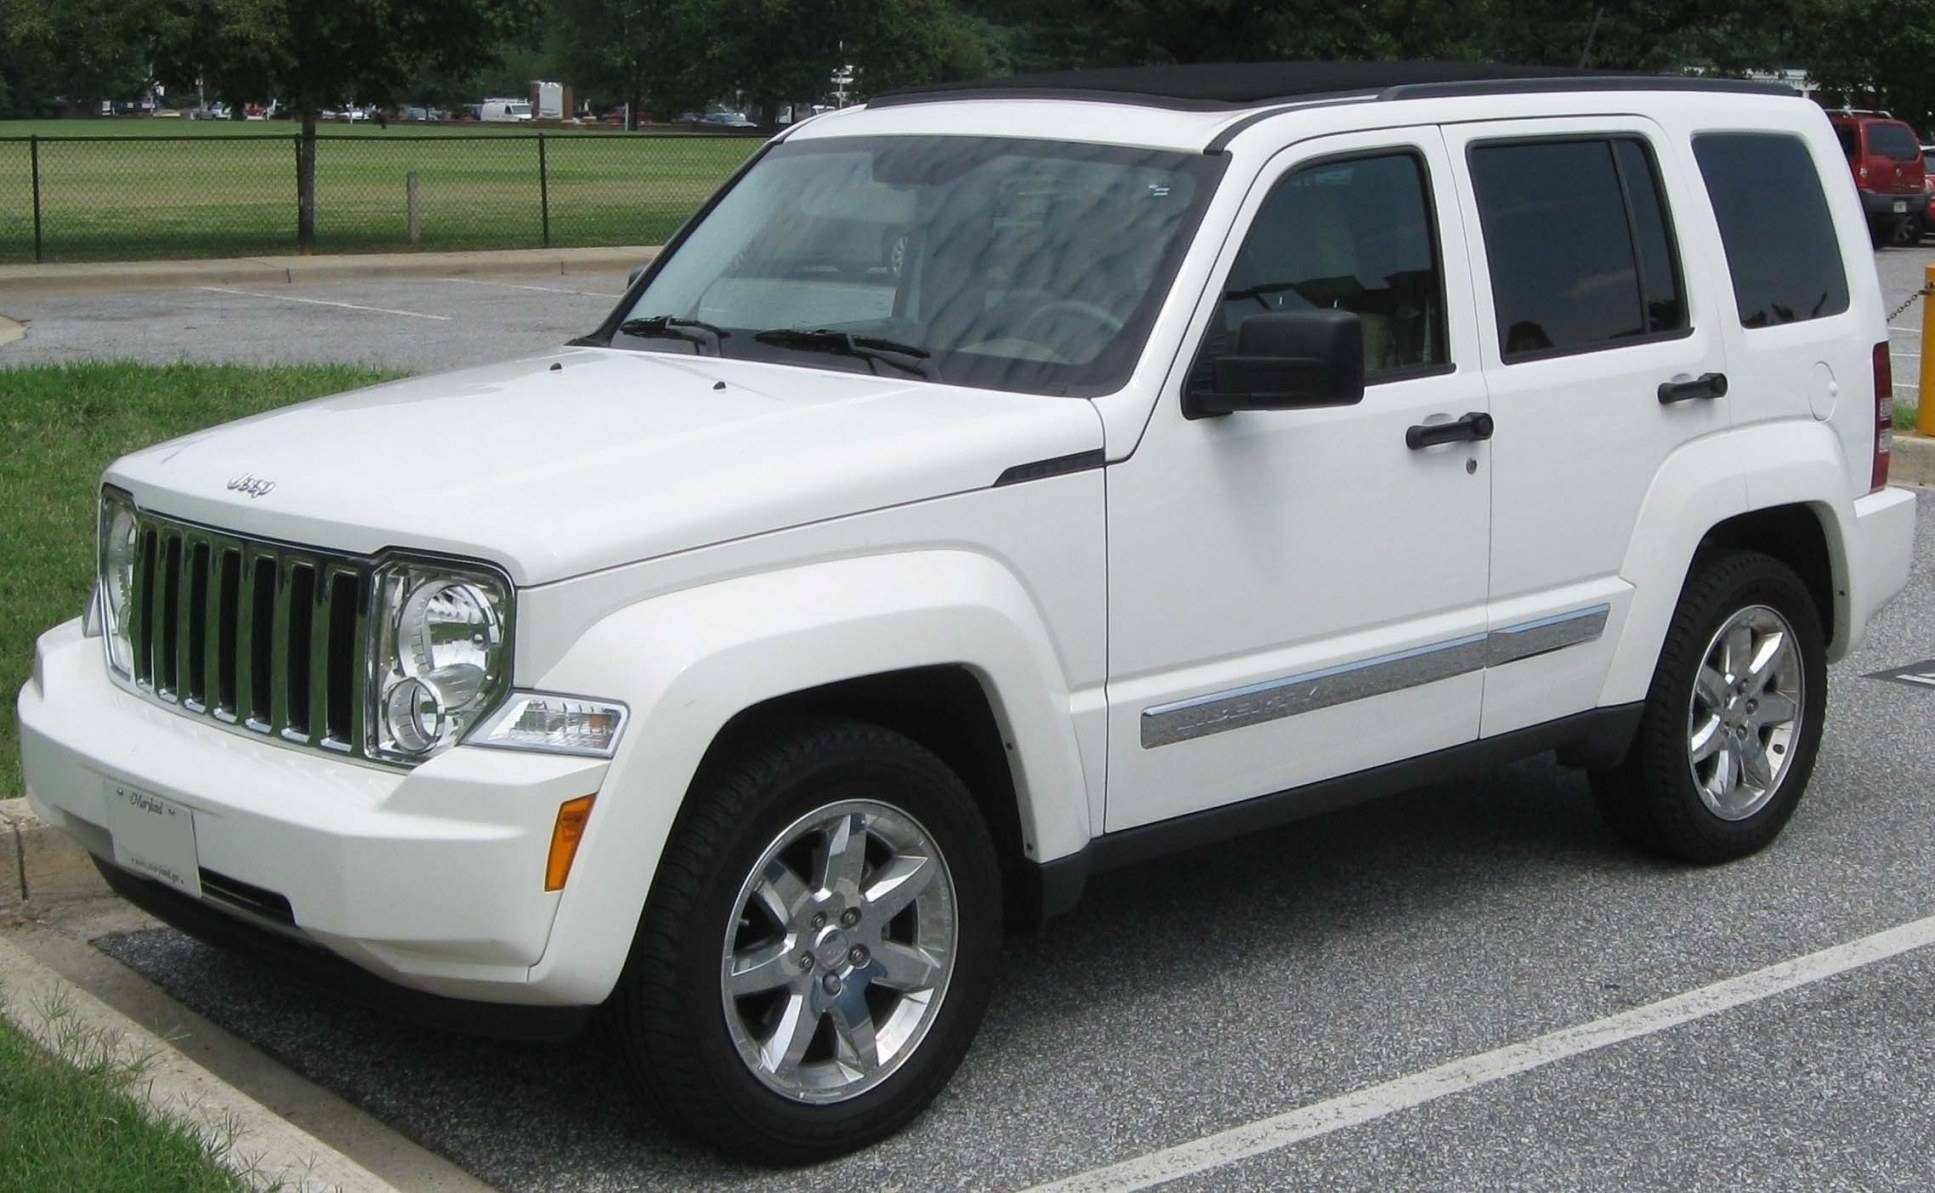 22 New 2019 Jeep Liberty Ratings with 2019 Jeep Liberty